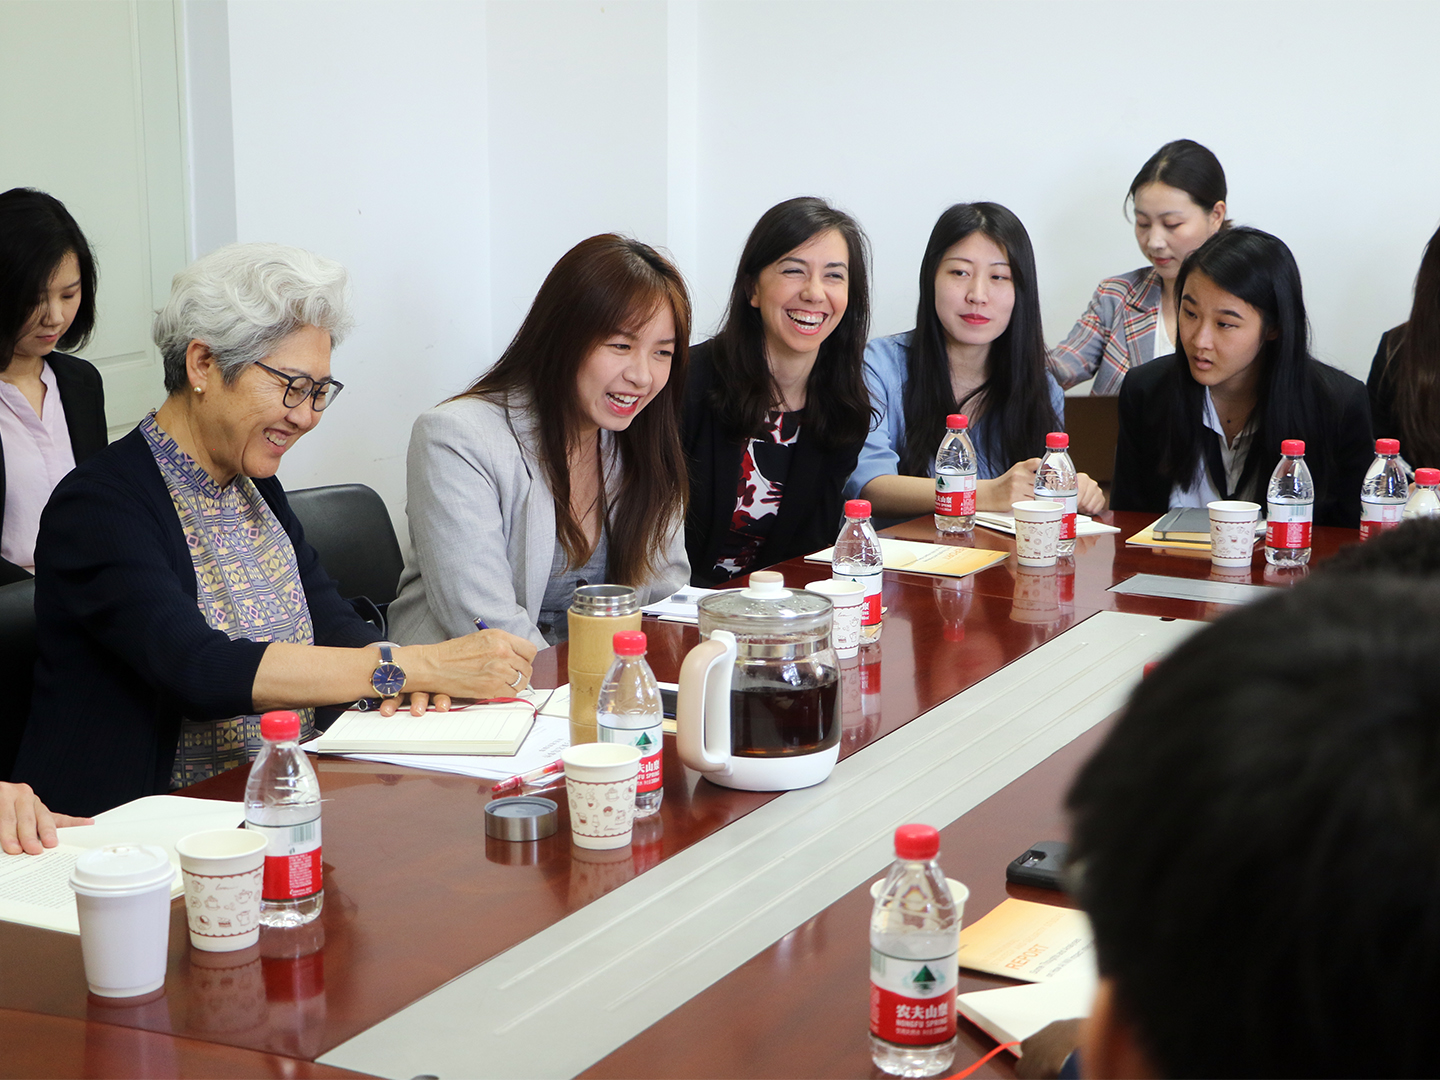 Madame Fu Ying sharing a laugh with the student fellows.